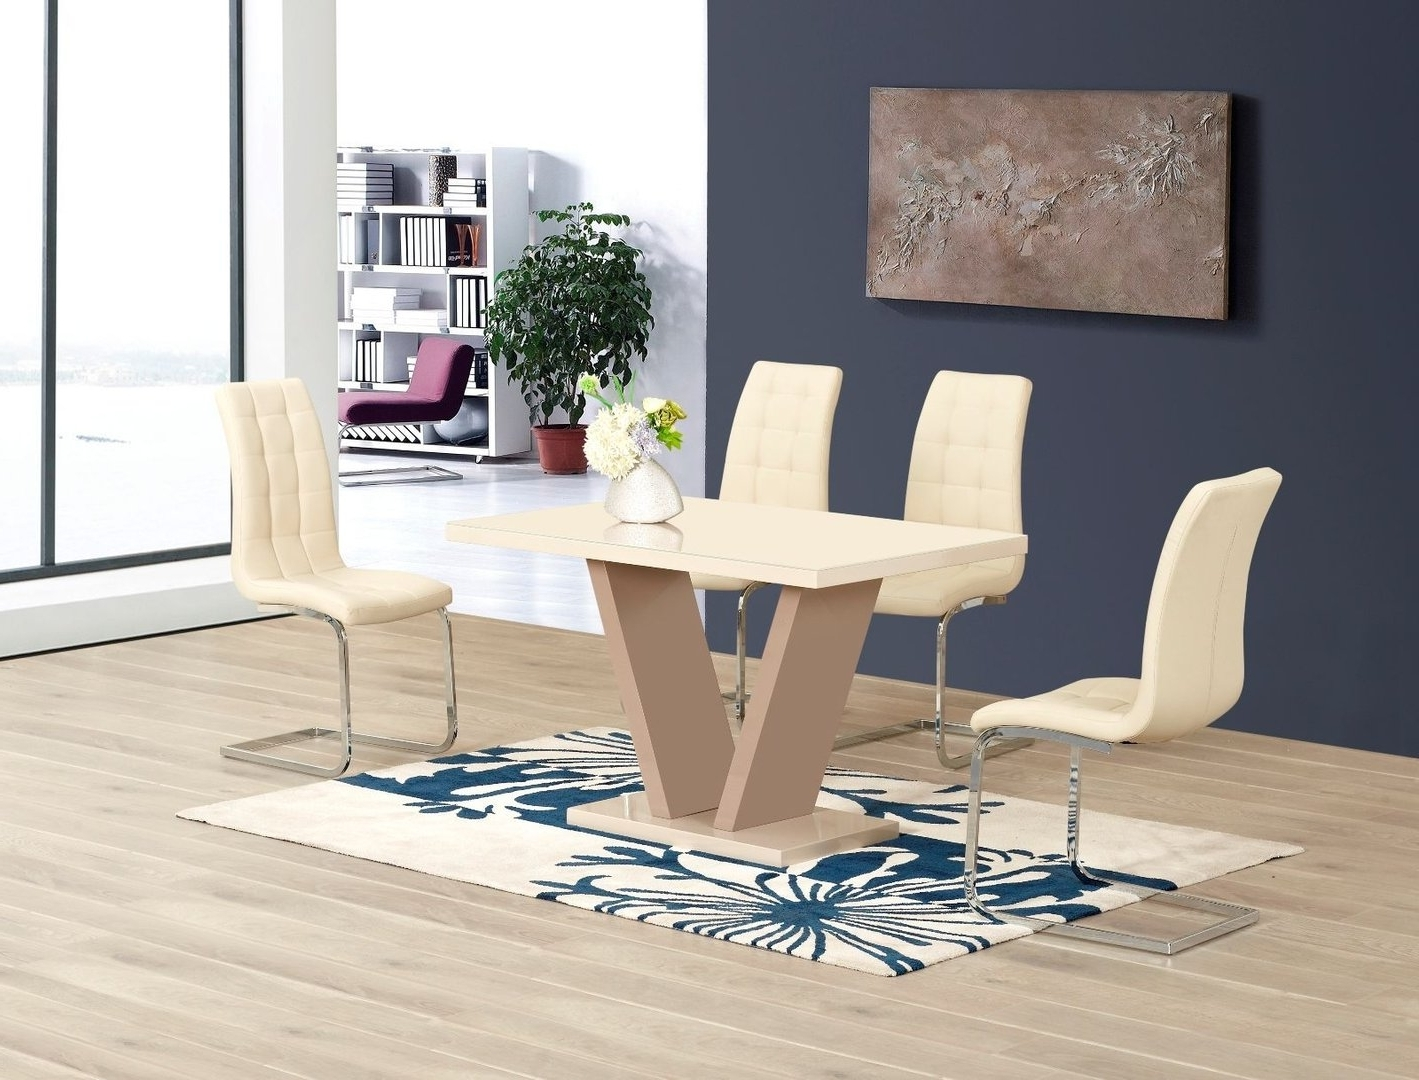 Extendable Dining Tables With 6 Chairs Throughout Well Known Cream High Gloss Glass Dining Table And 6 Chairs – Homegenies (Gallery 12 of 25)